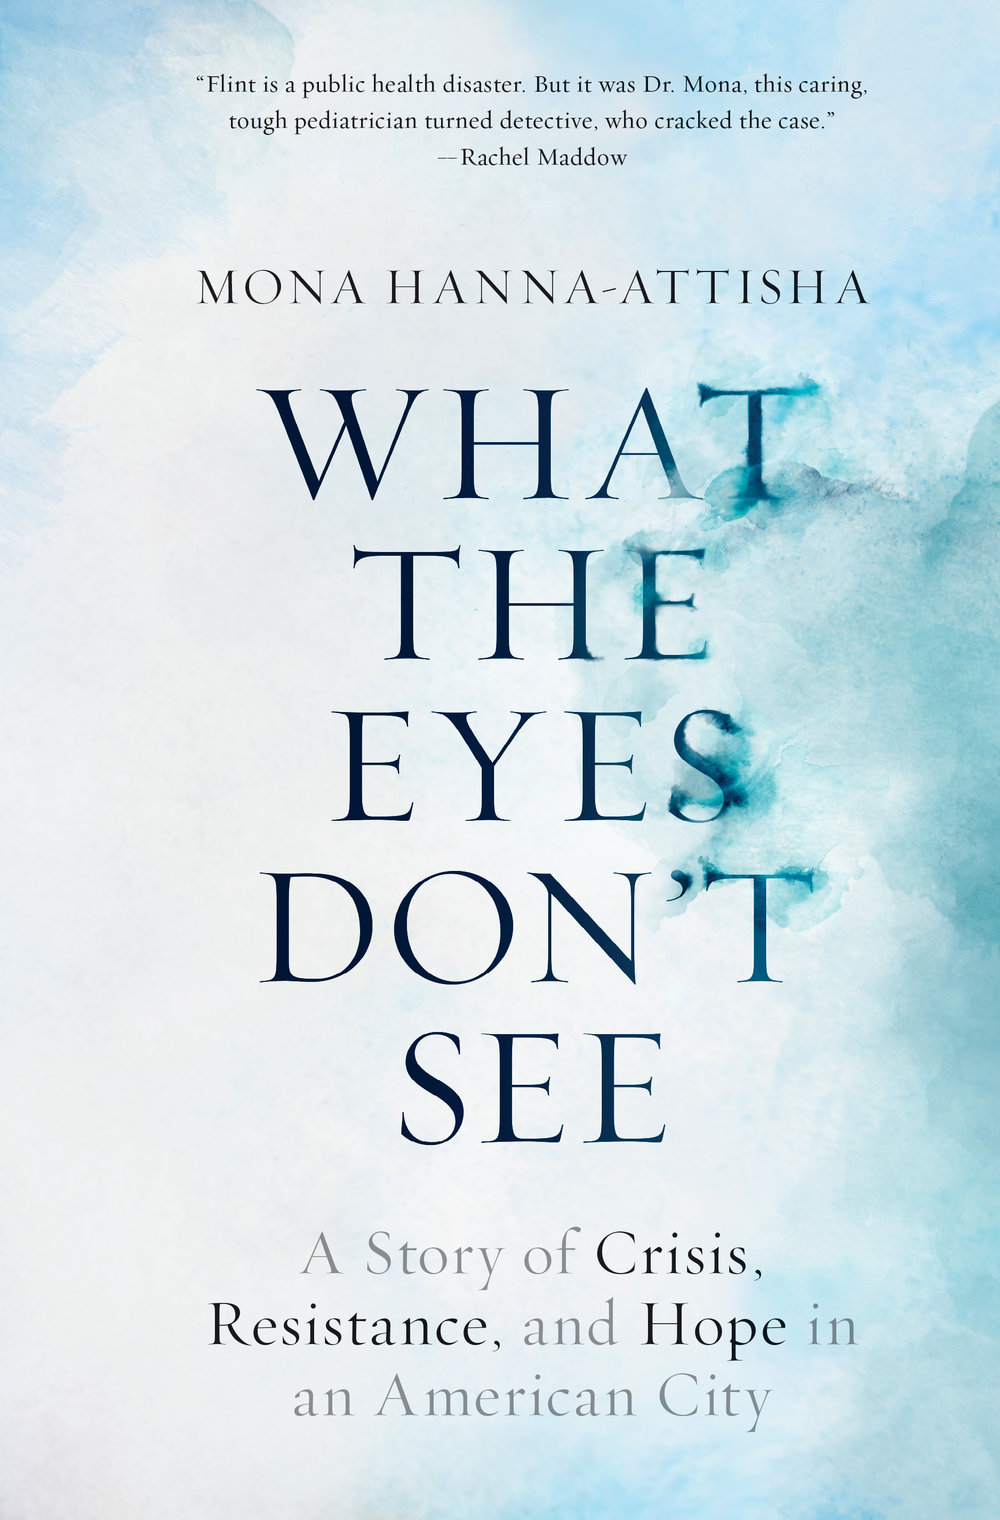 What+the+Eyes+Don't+See+hi-res+cover.jpg